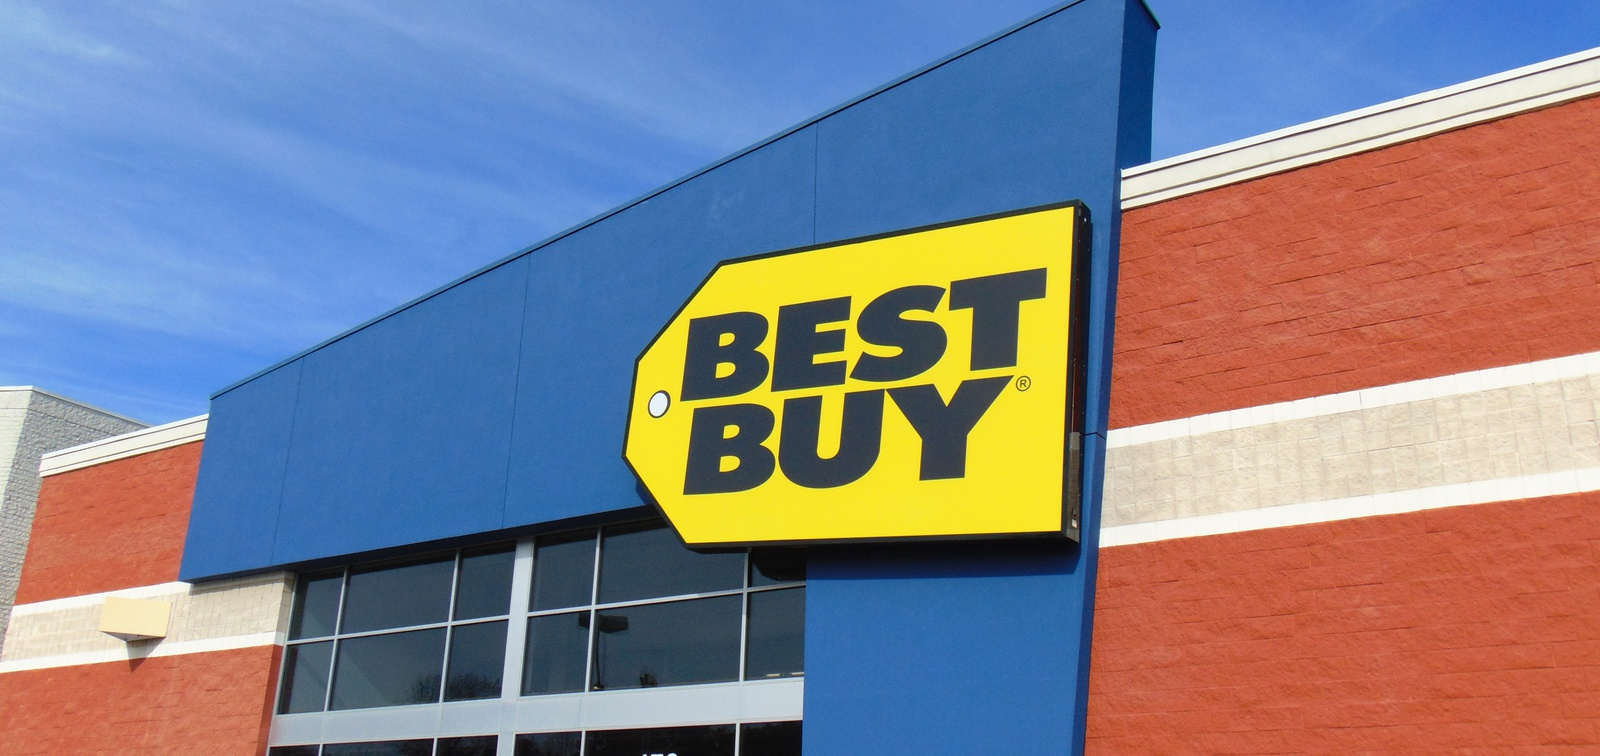 Best Buy tests limited SKUs on store floor to make space for fulfillment